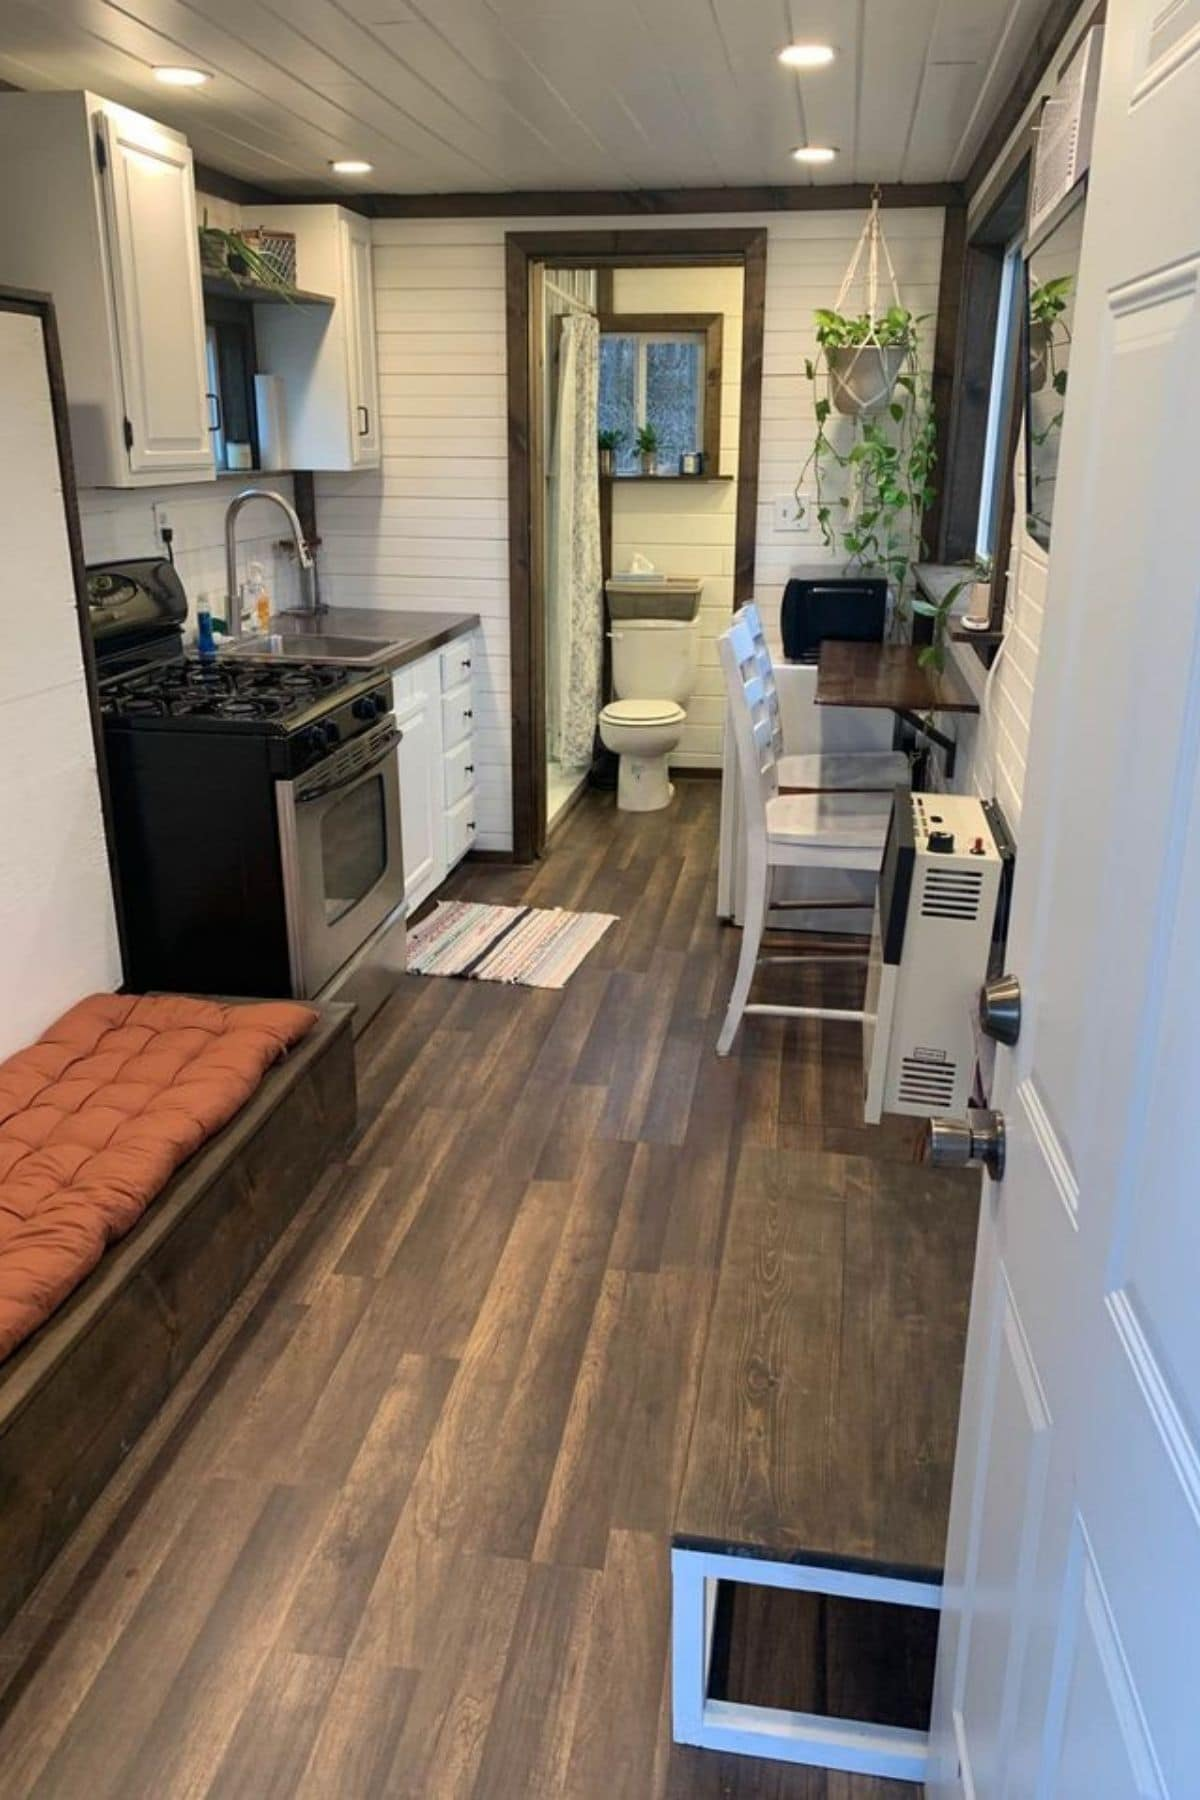 View from front door into tiny home